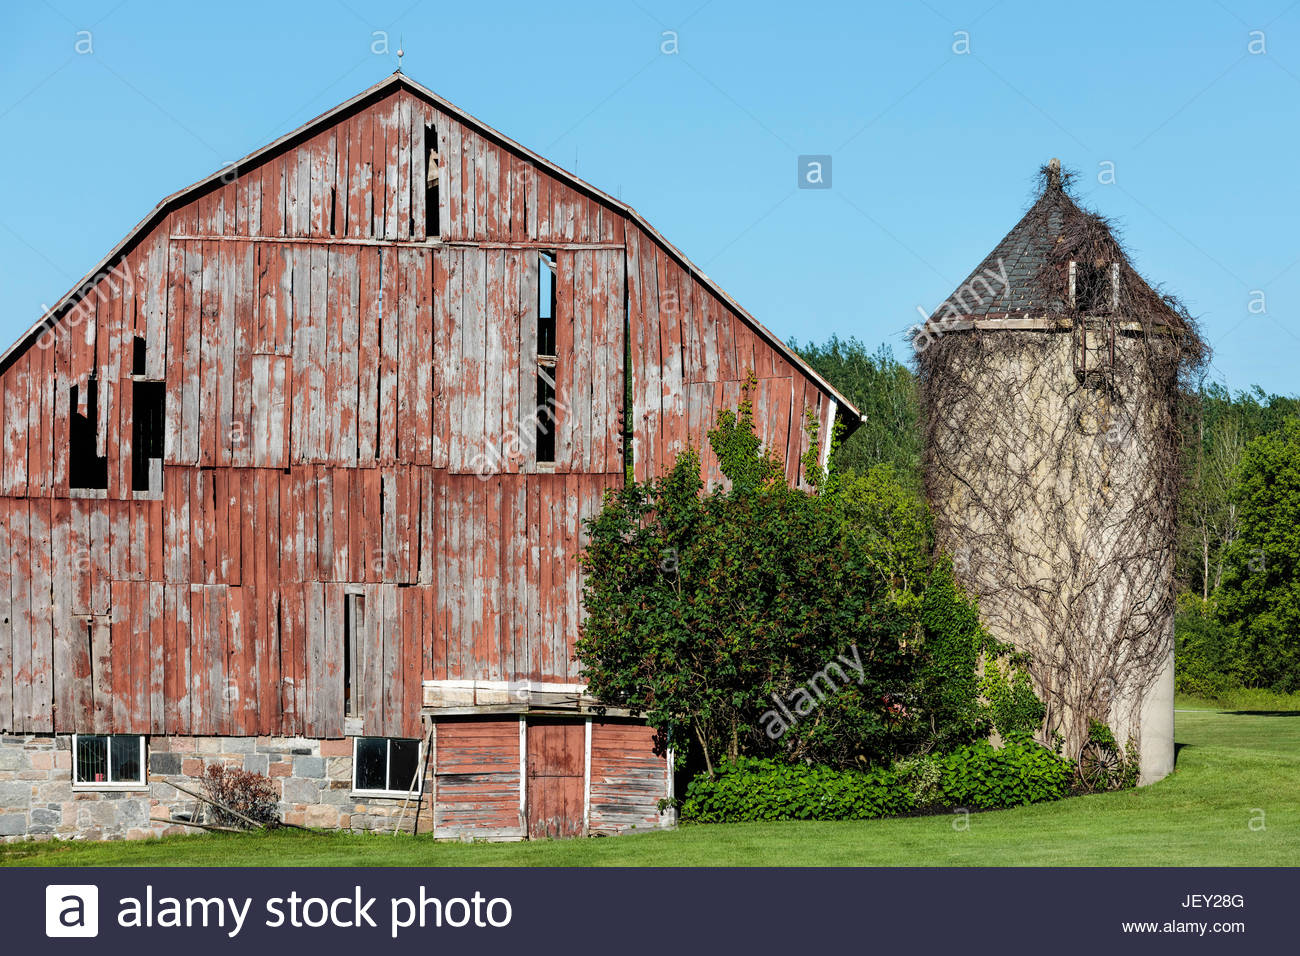 Old barn with attached silo on a farm historic timber framed vertical siding near Goodwood Ontario Canada - Stock Image